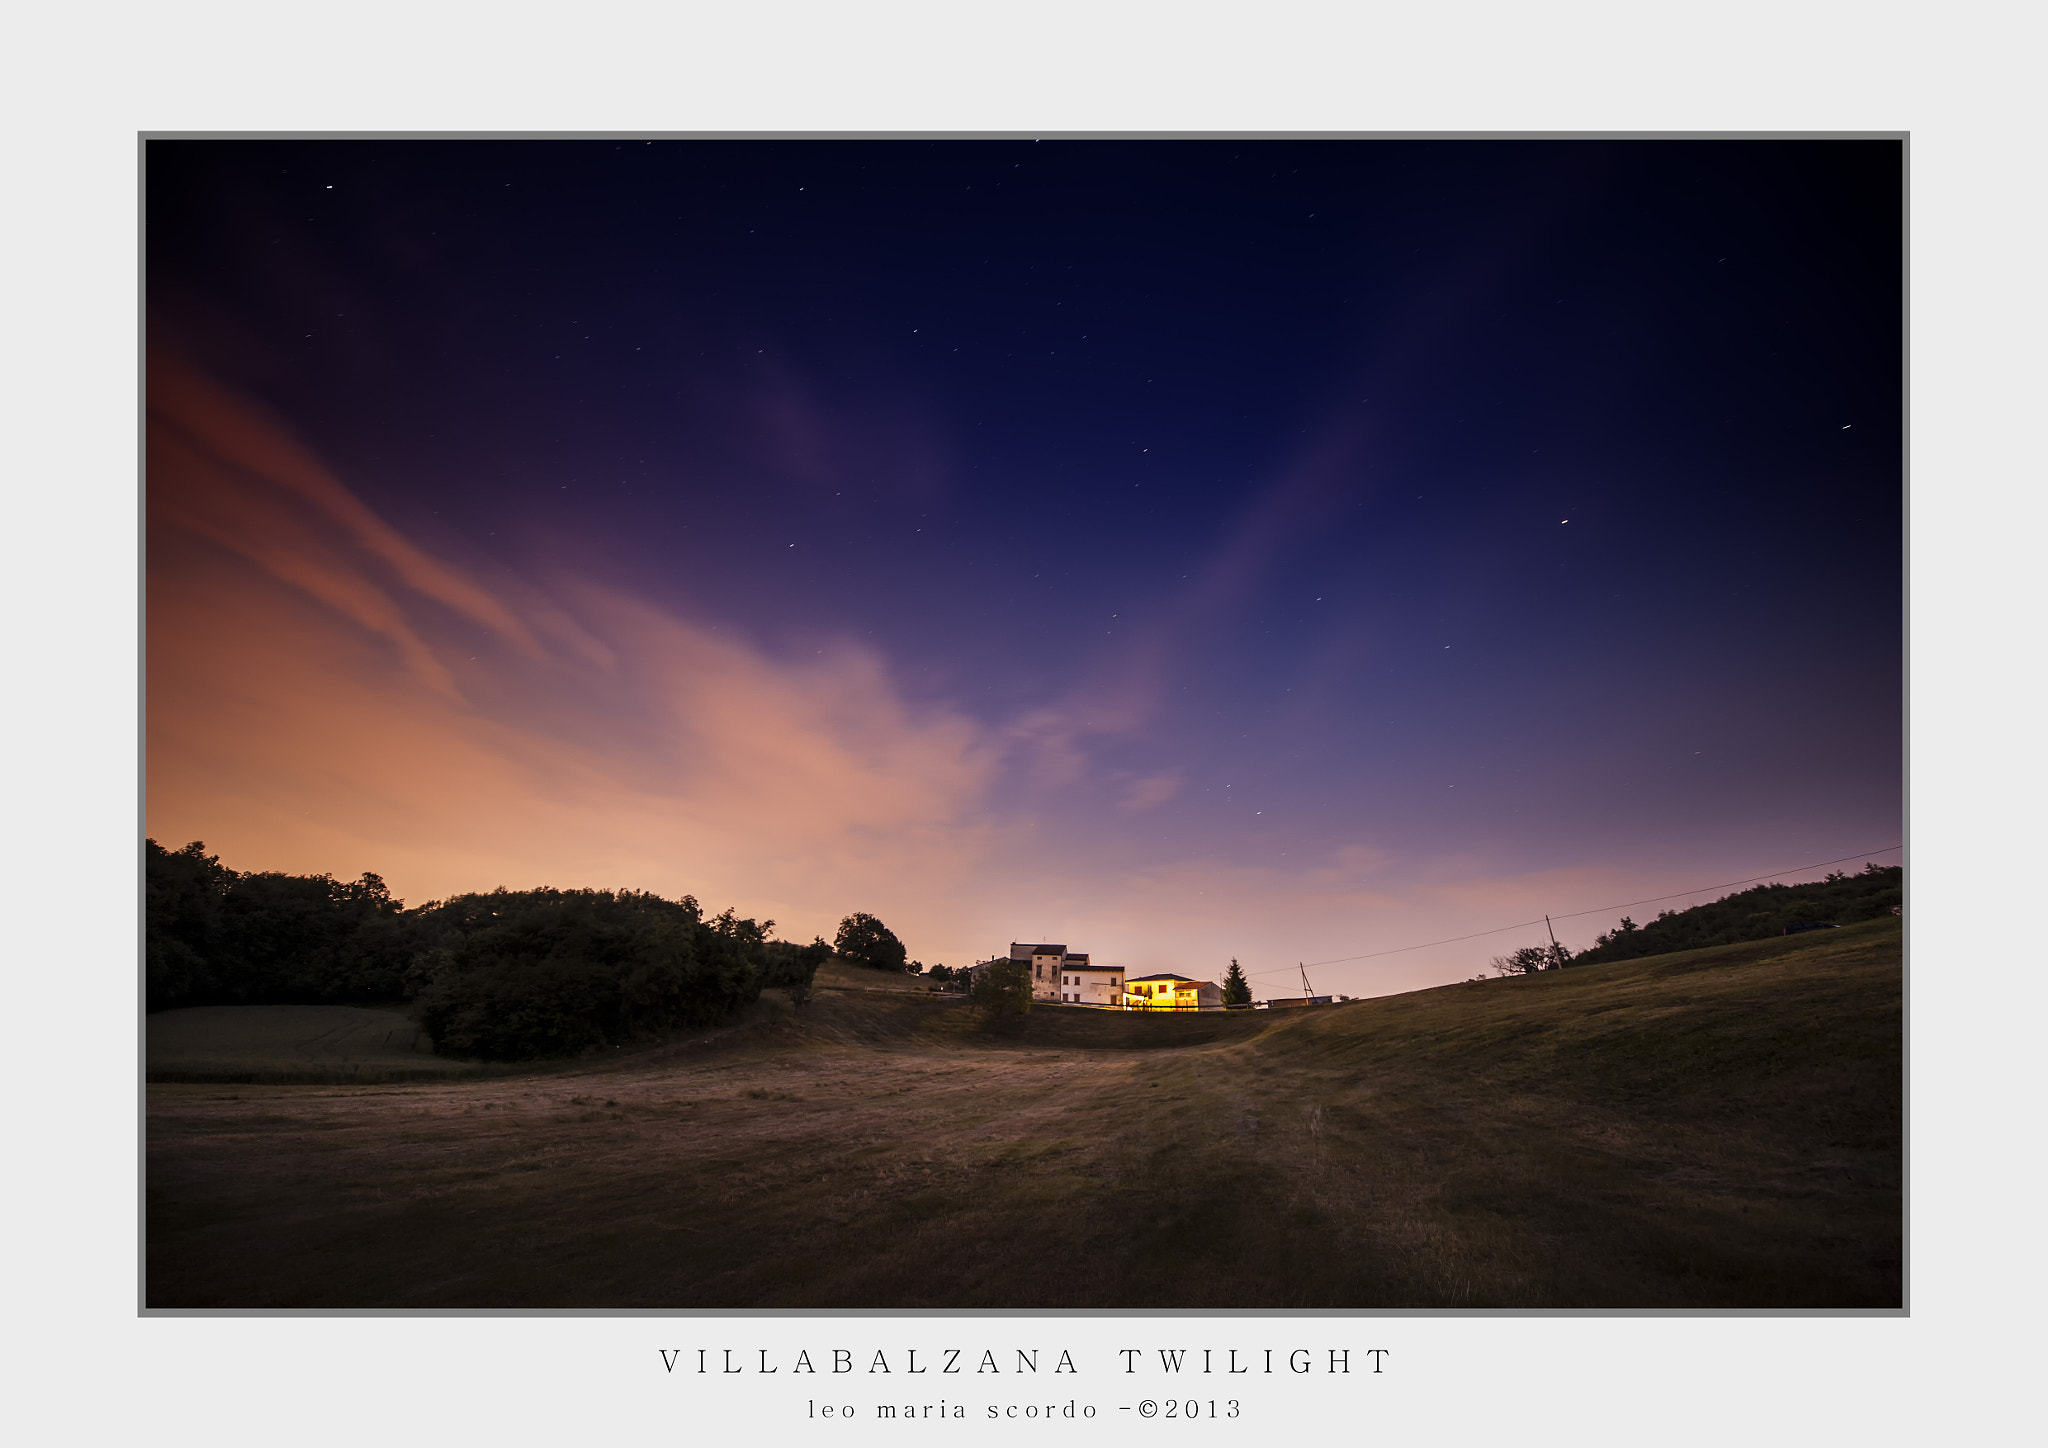 Photograph VILLABALZANA TWILIGHT by Leo Maria Scordo on 500px